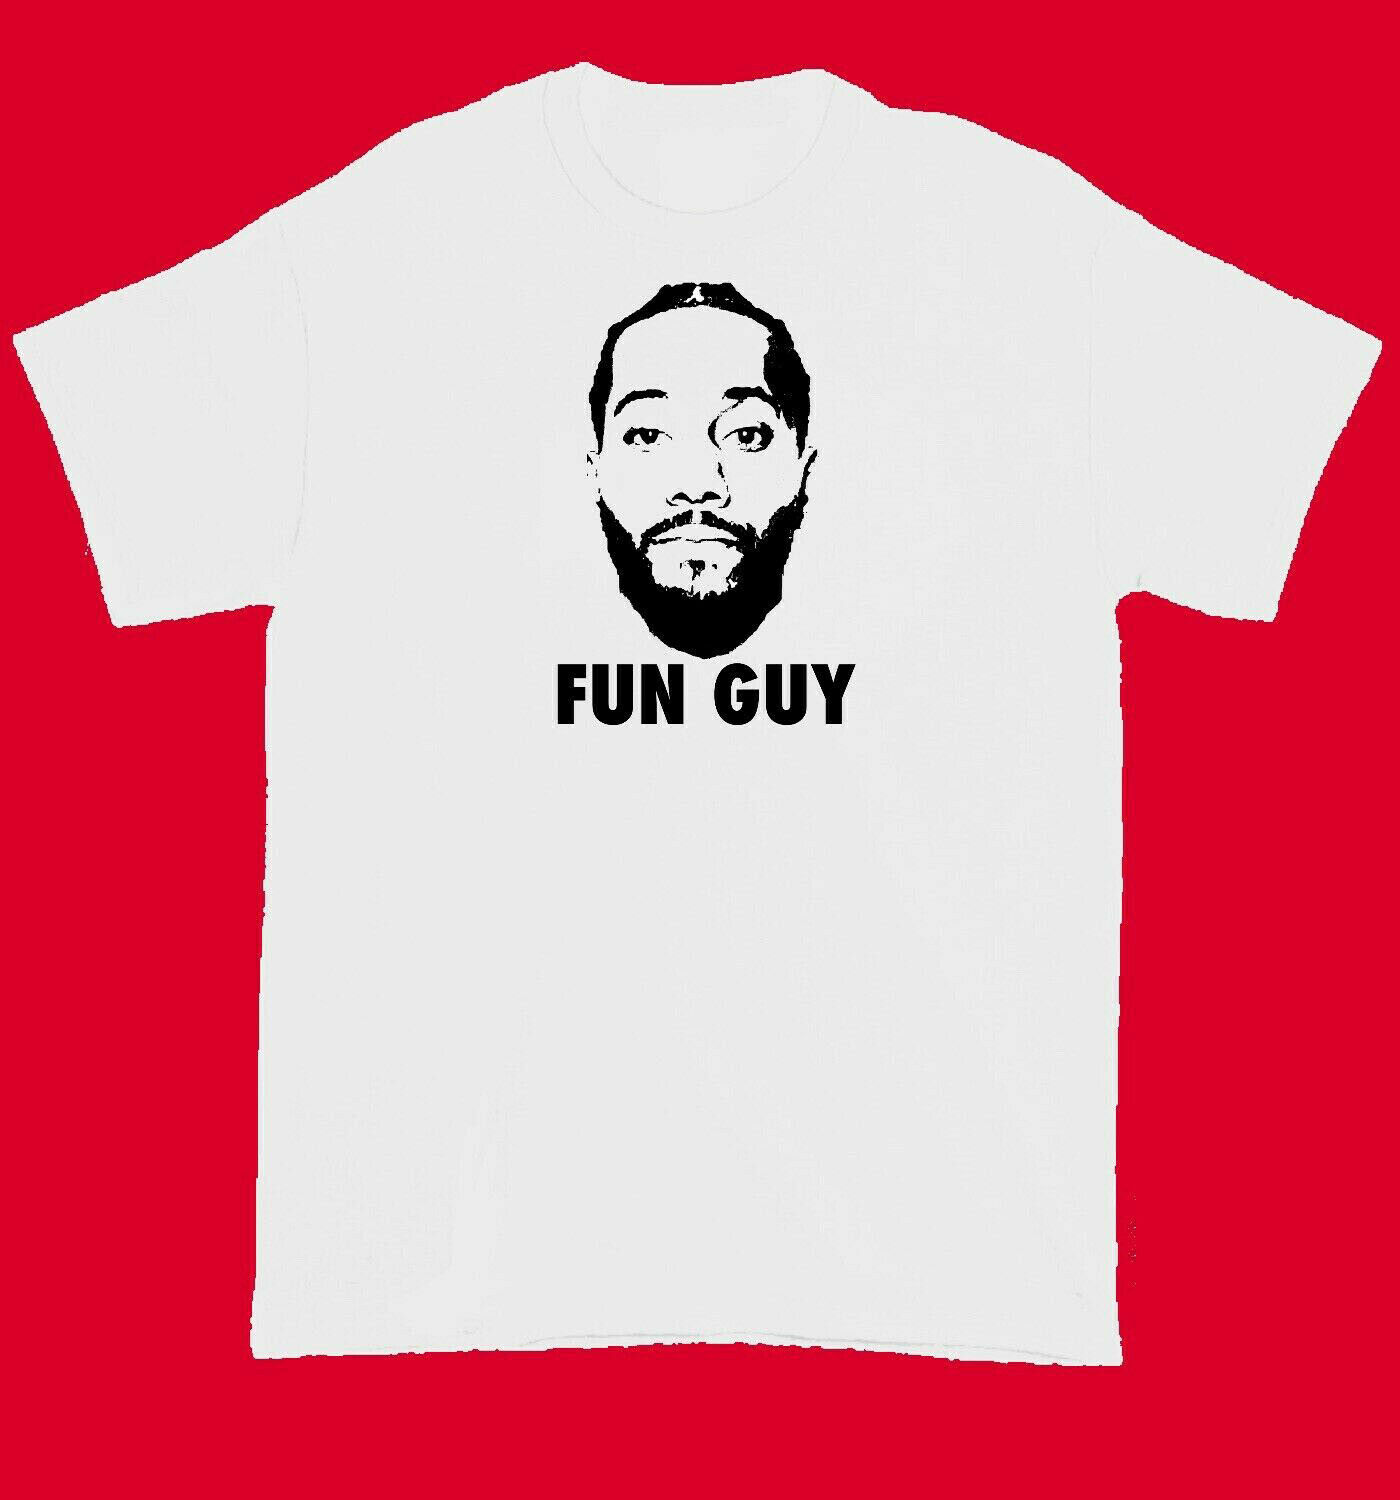 Kawhi Leonard FUN GUY T Shirt White M-3XL T shirt Men Black Short Sleeve Cotton Hip Hop T-Shirt Print Tee Shirts